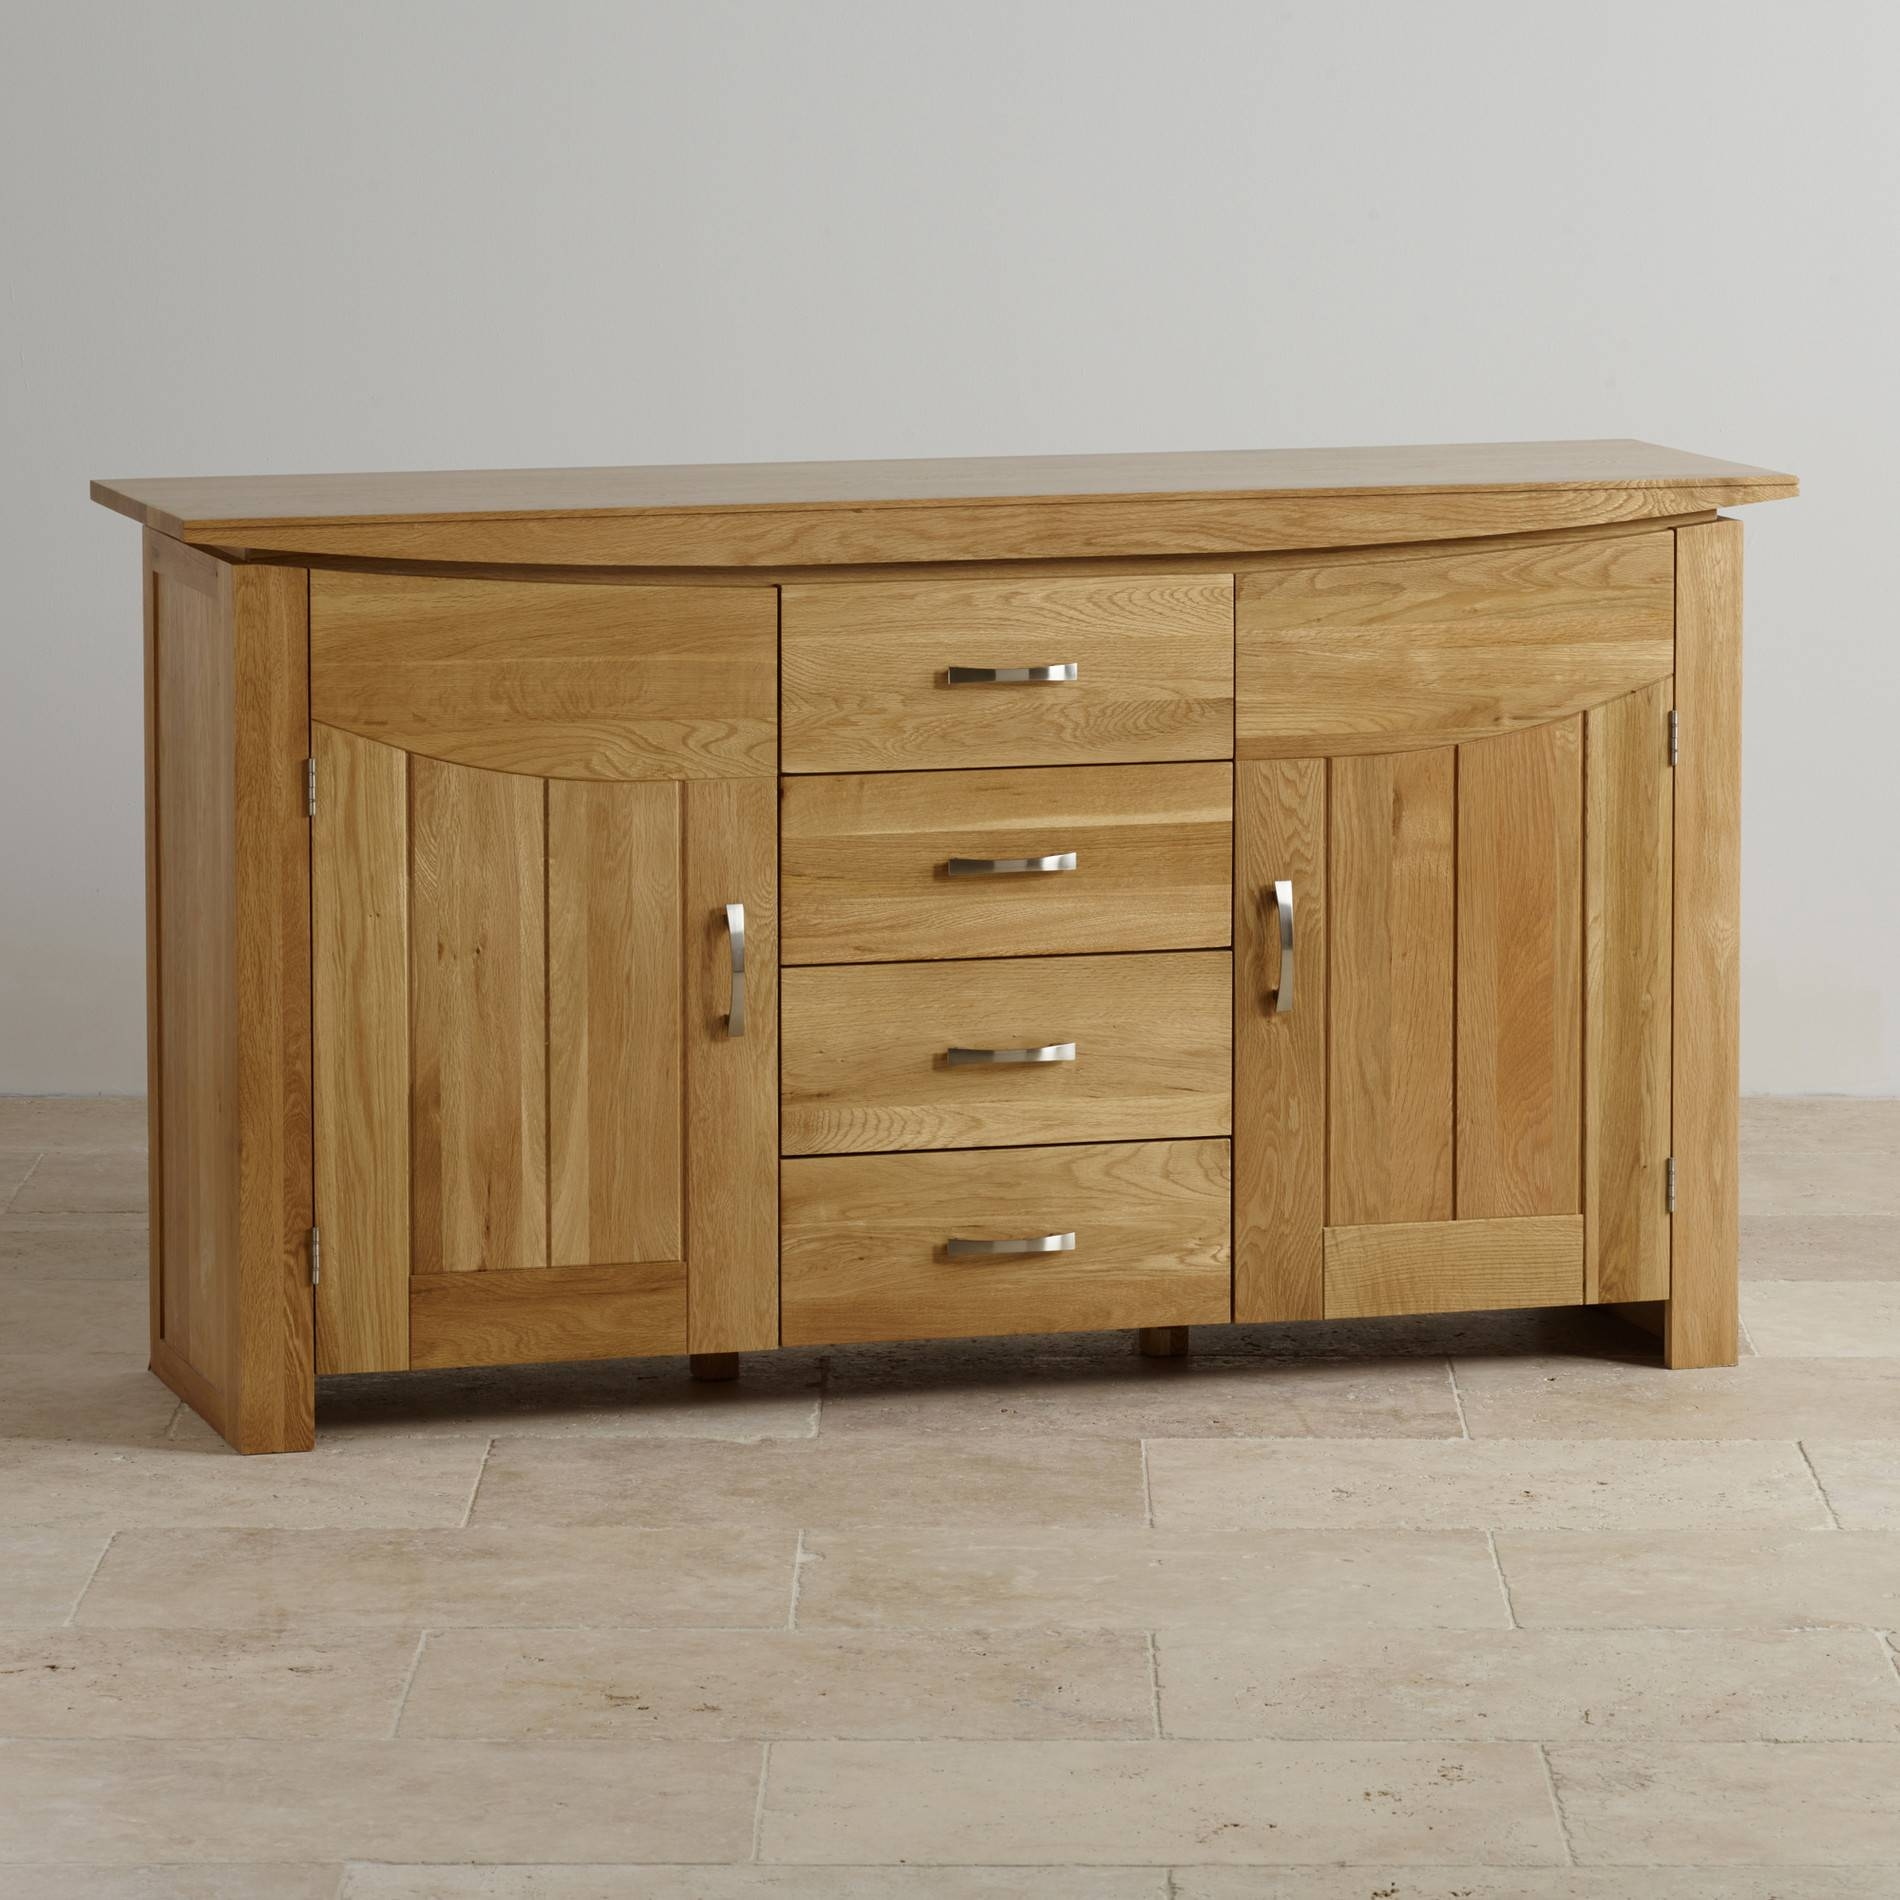 Sideboards For Versatile Uses - Furnitureanddecors/decor inside Solid Oak Sideboards (Image 11 of 15)